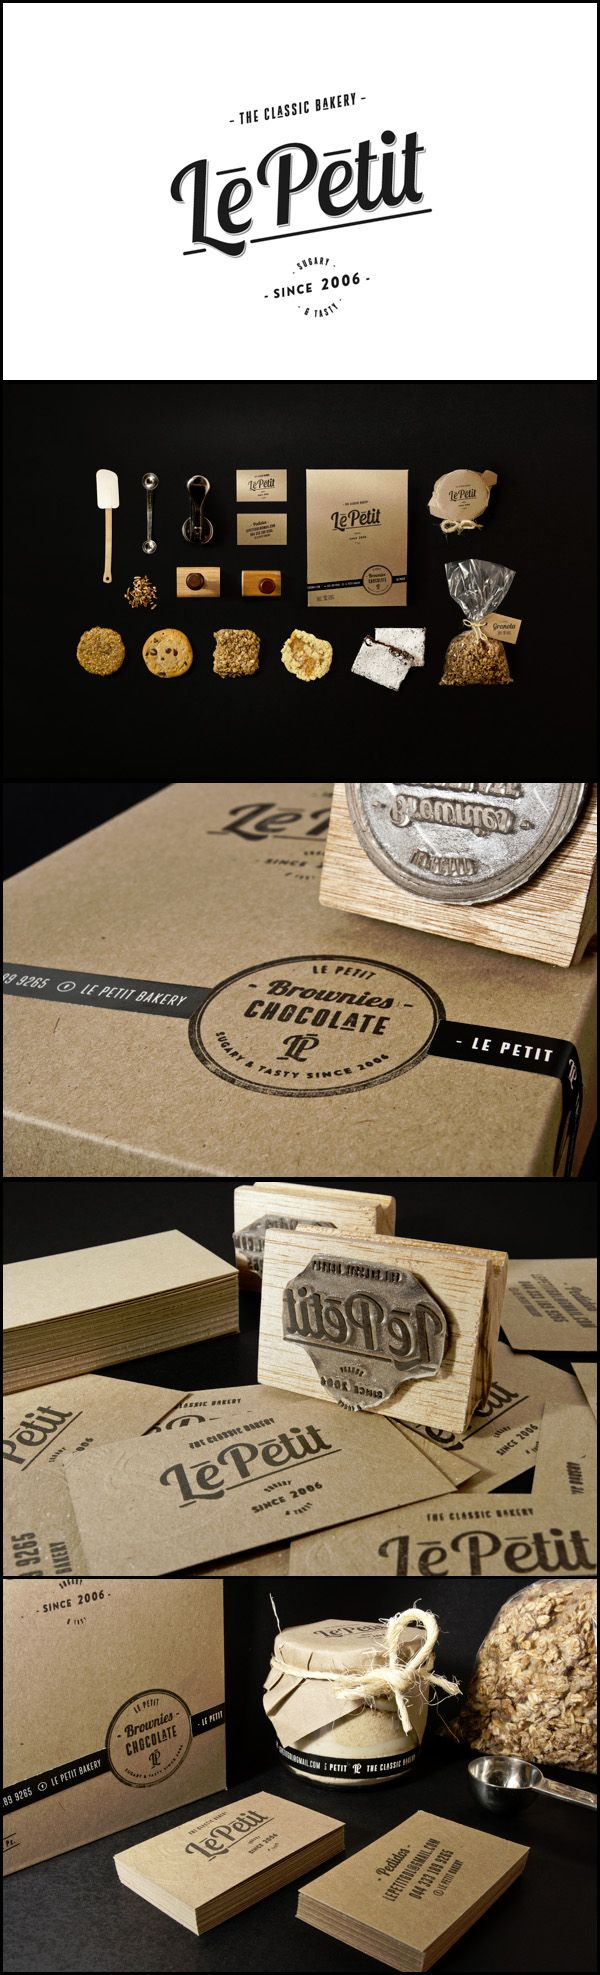 "Le Petit Bakery  Branding, Packaging Could be MY ""La Petite Patisserie""! Tasteful use of Lobster ;)"